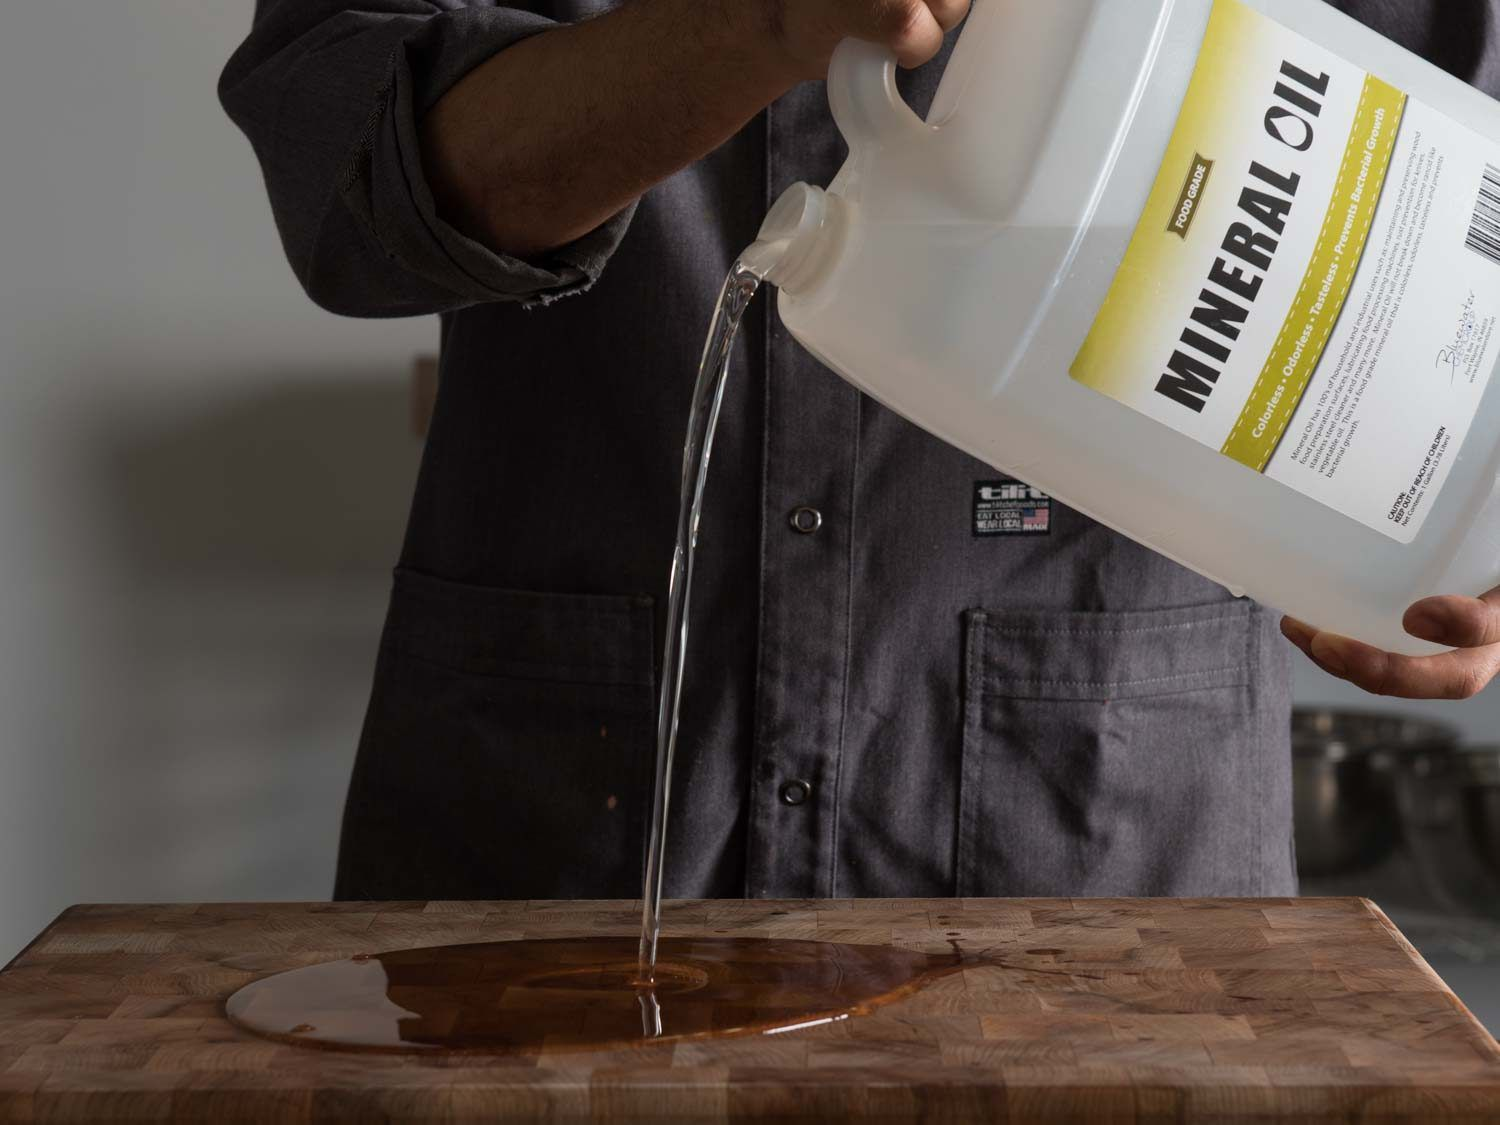 pouring mineral oil onto wood cutting board